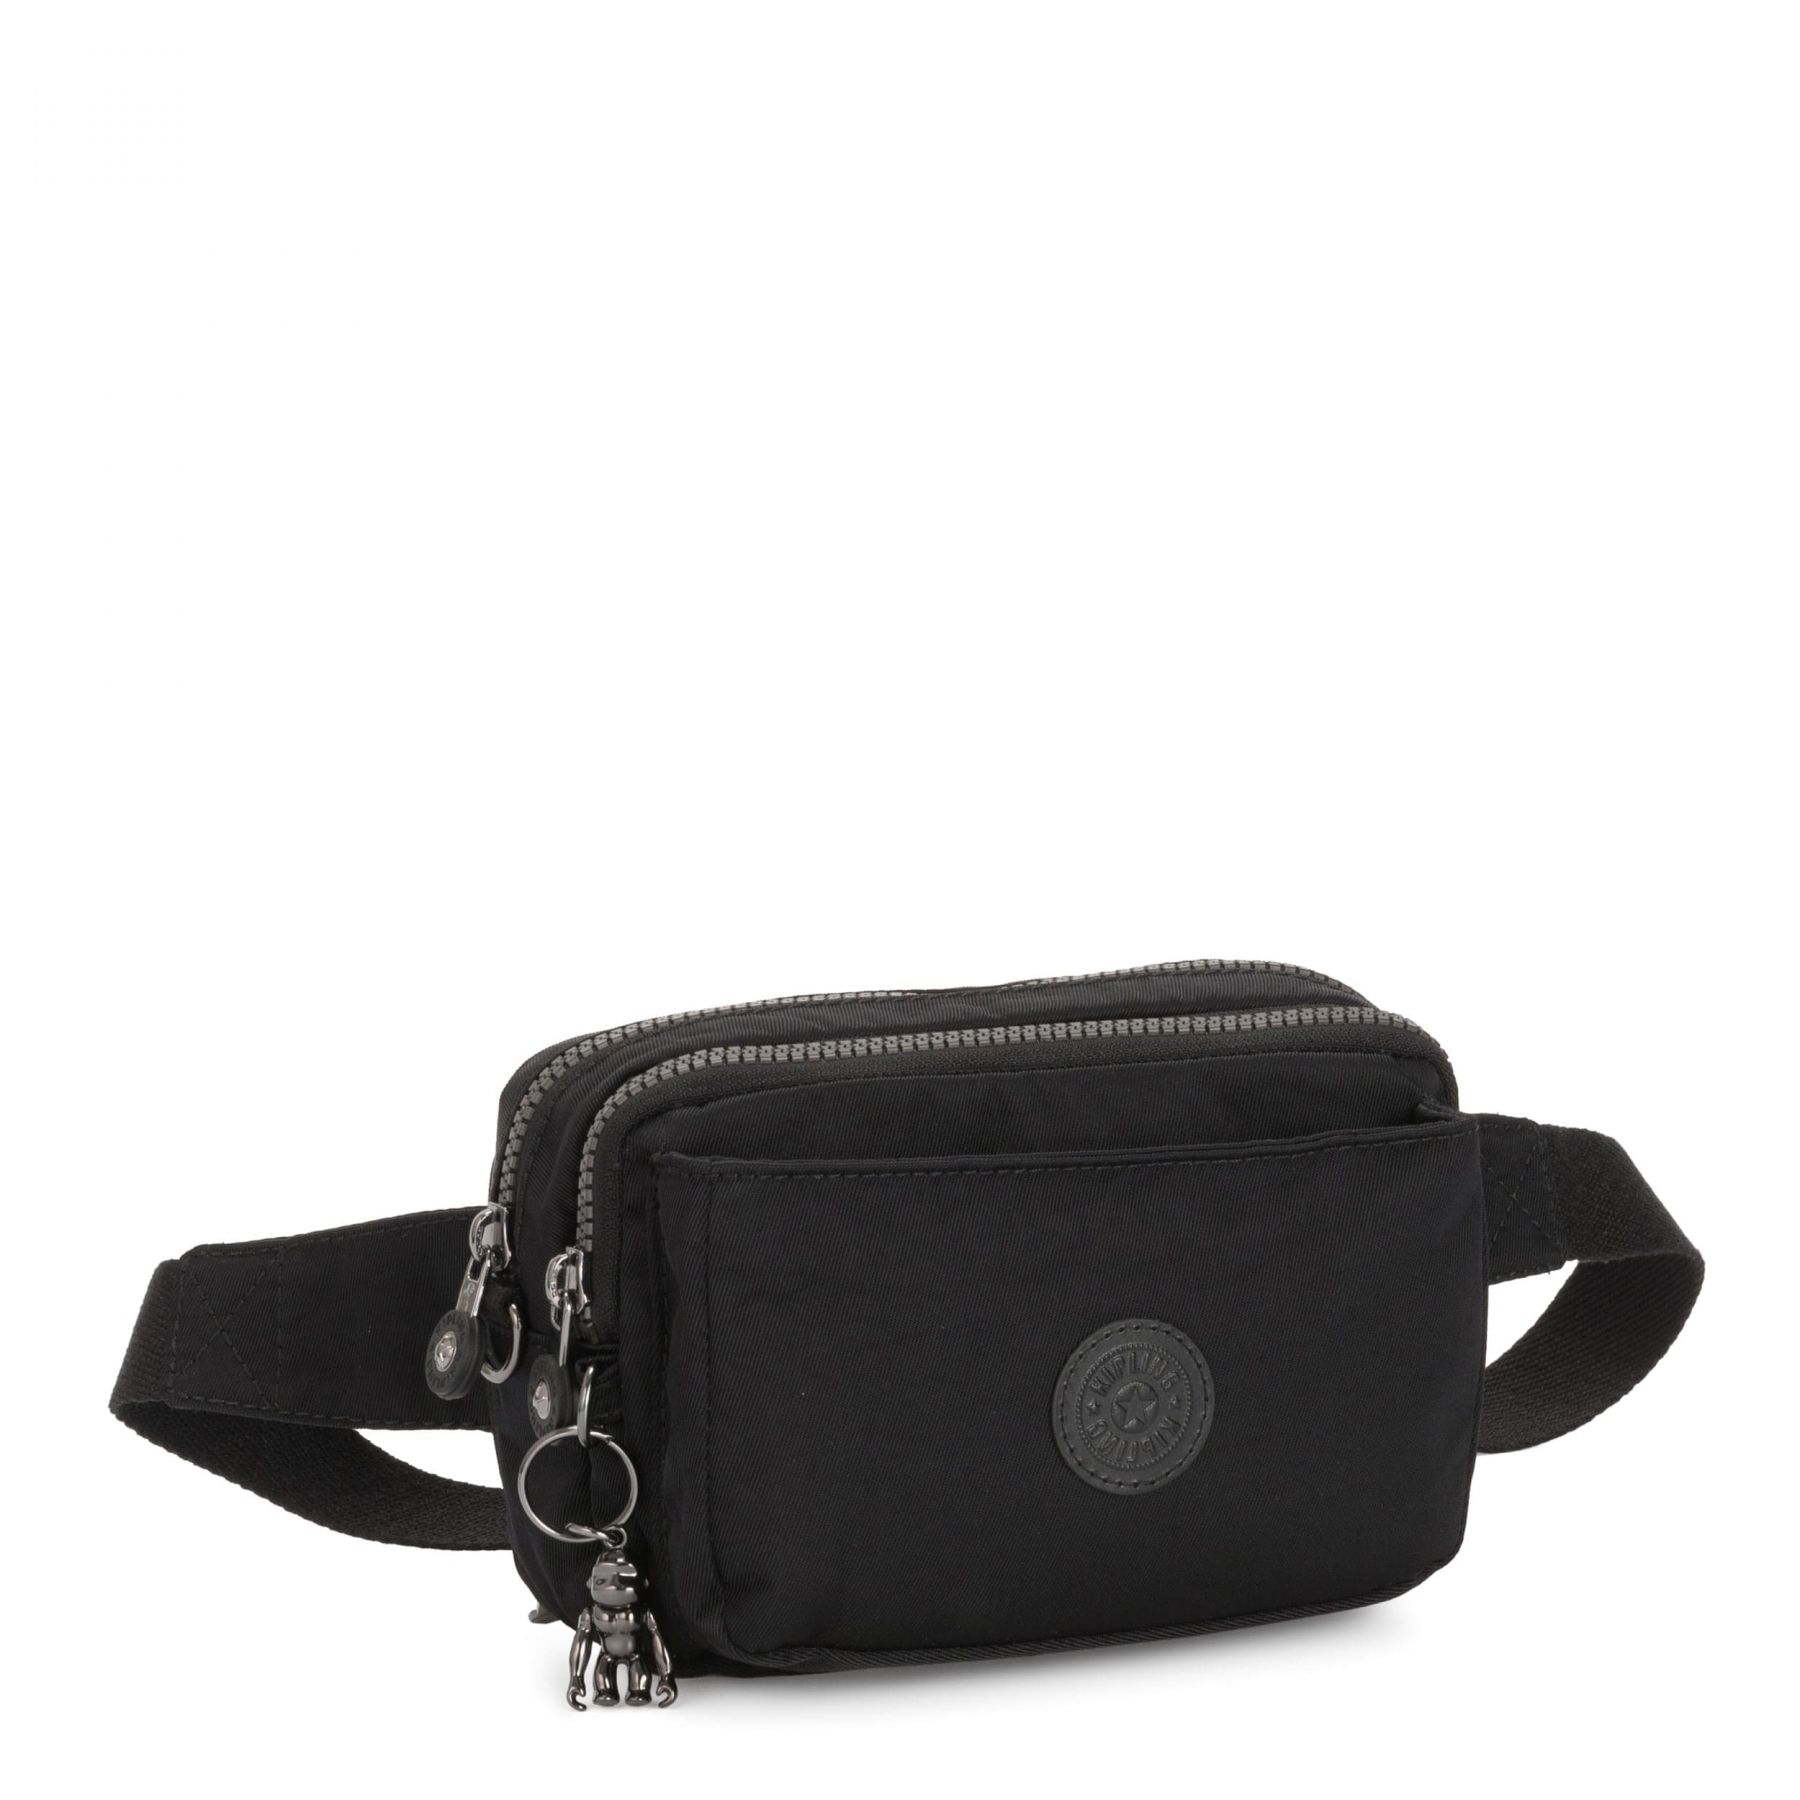 ABANU MULTI Latest Shoulder Bags by Kipling - view 4